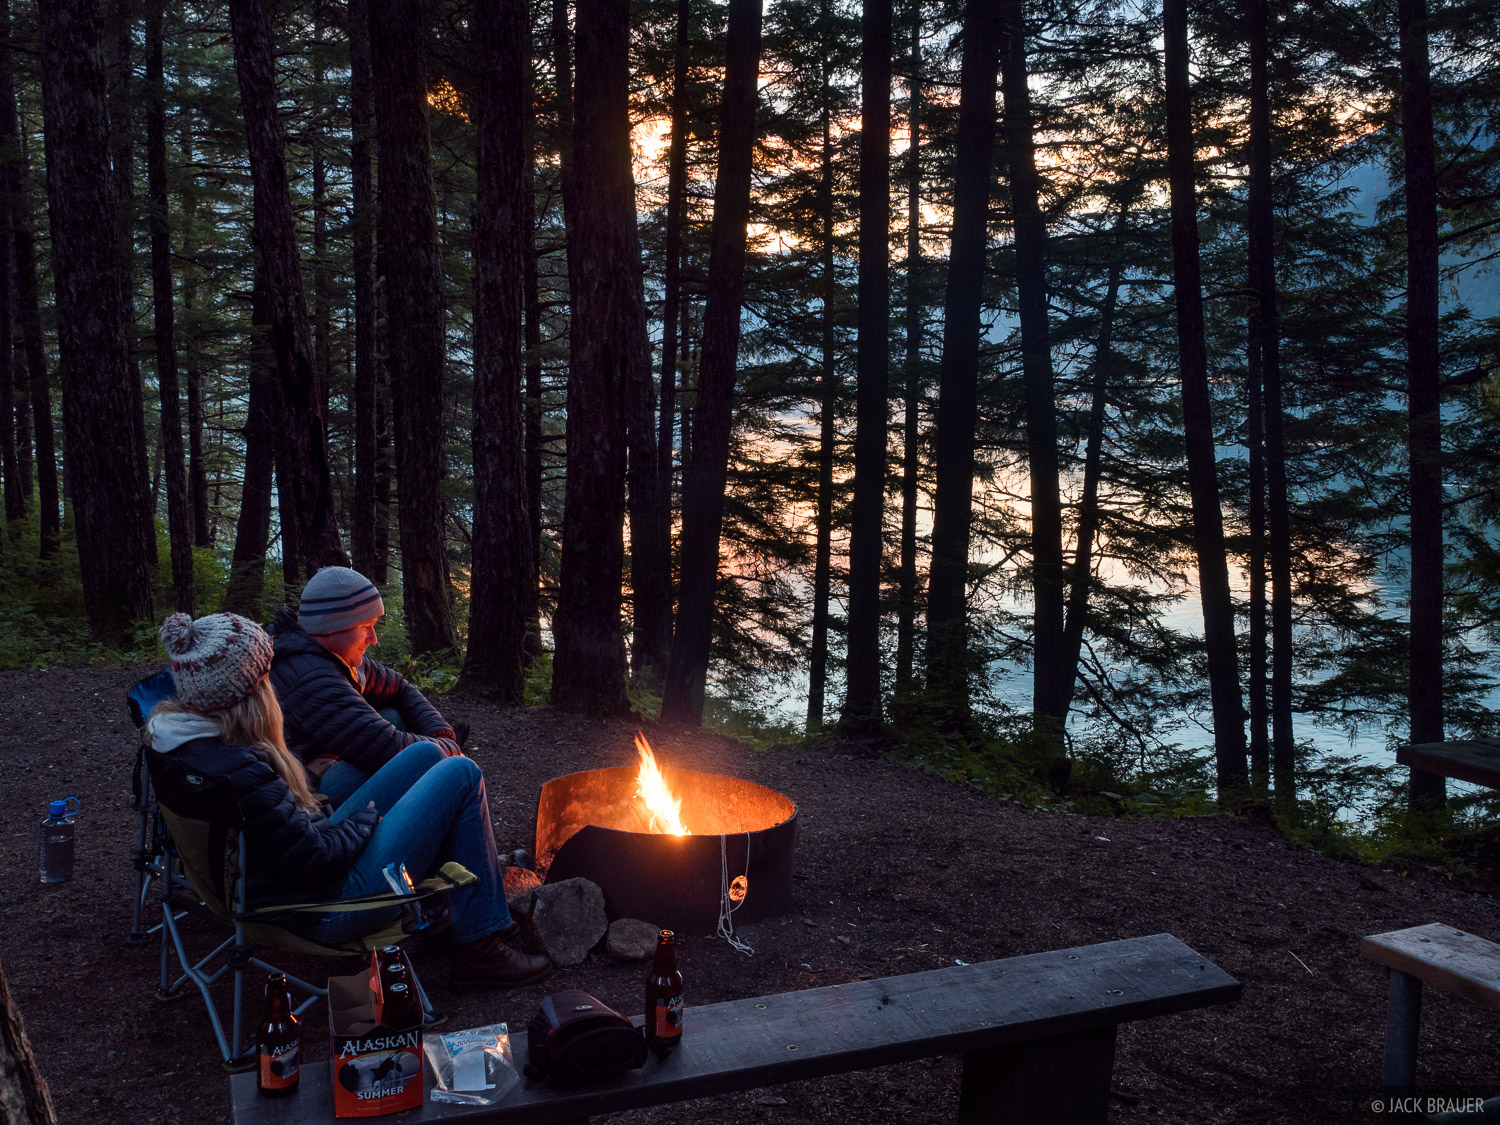 Alaska, Chilkoot Lake, Haines, campfire, photo